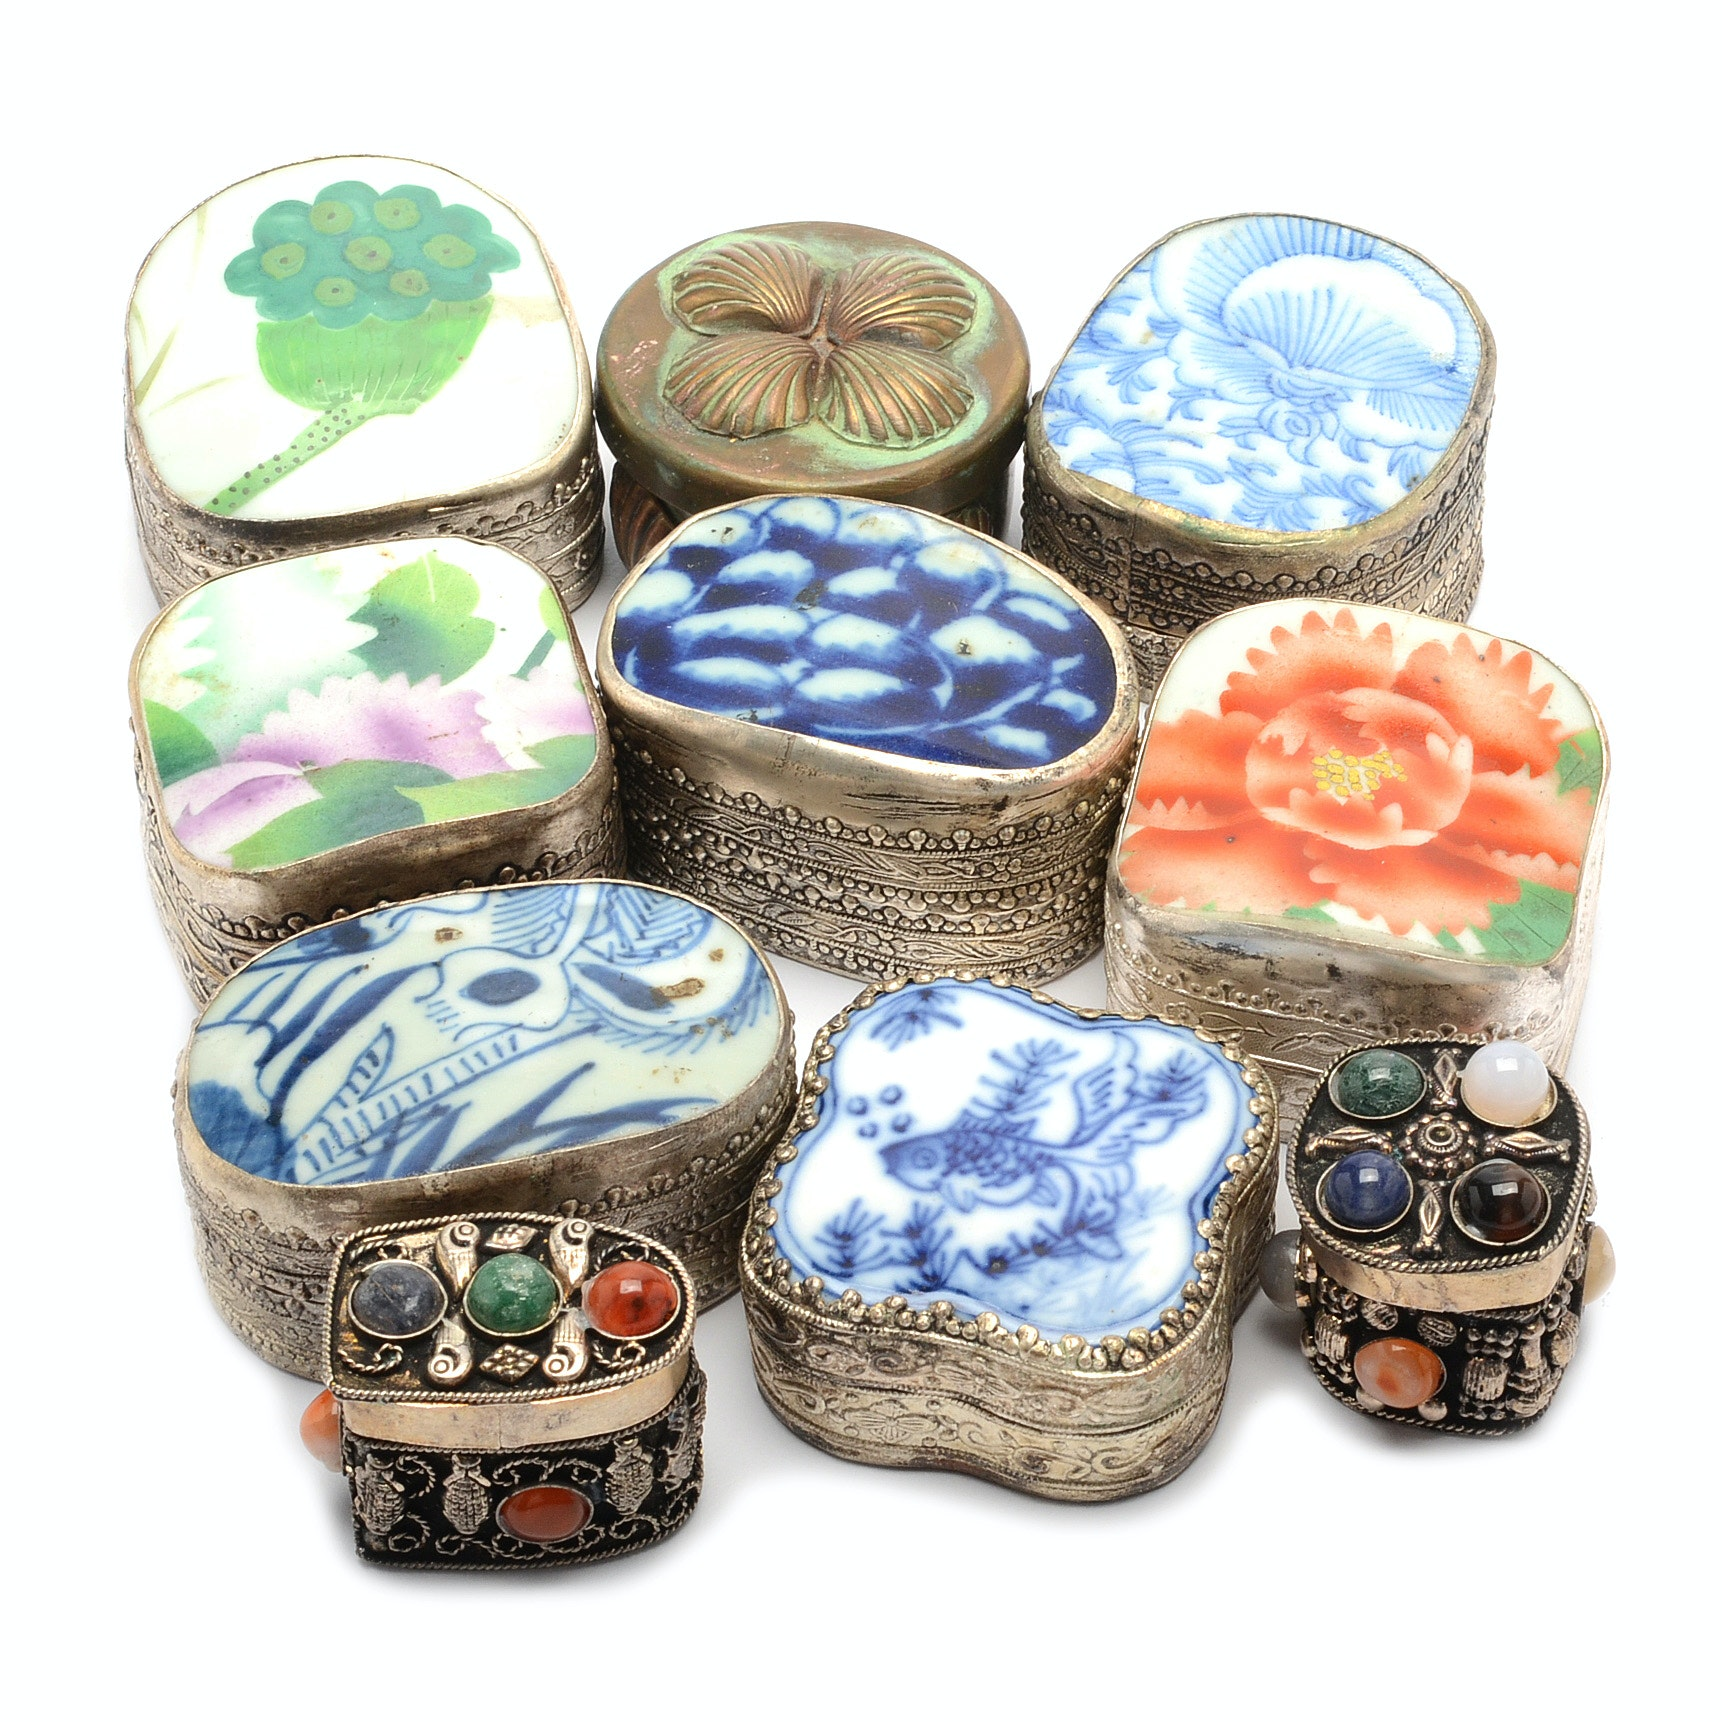 Assortment of Decorative Asian Style Trinket Boxes